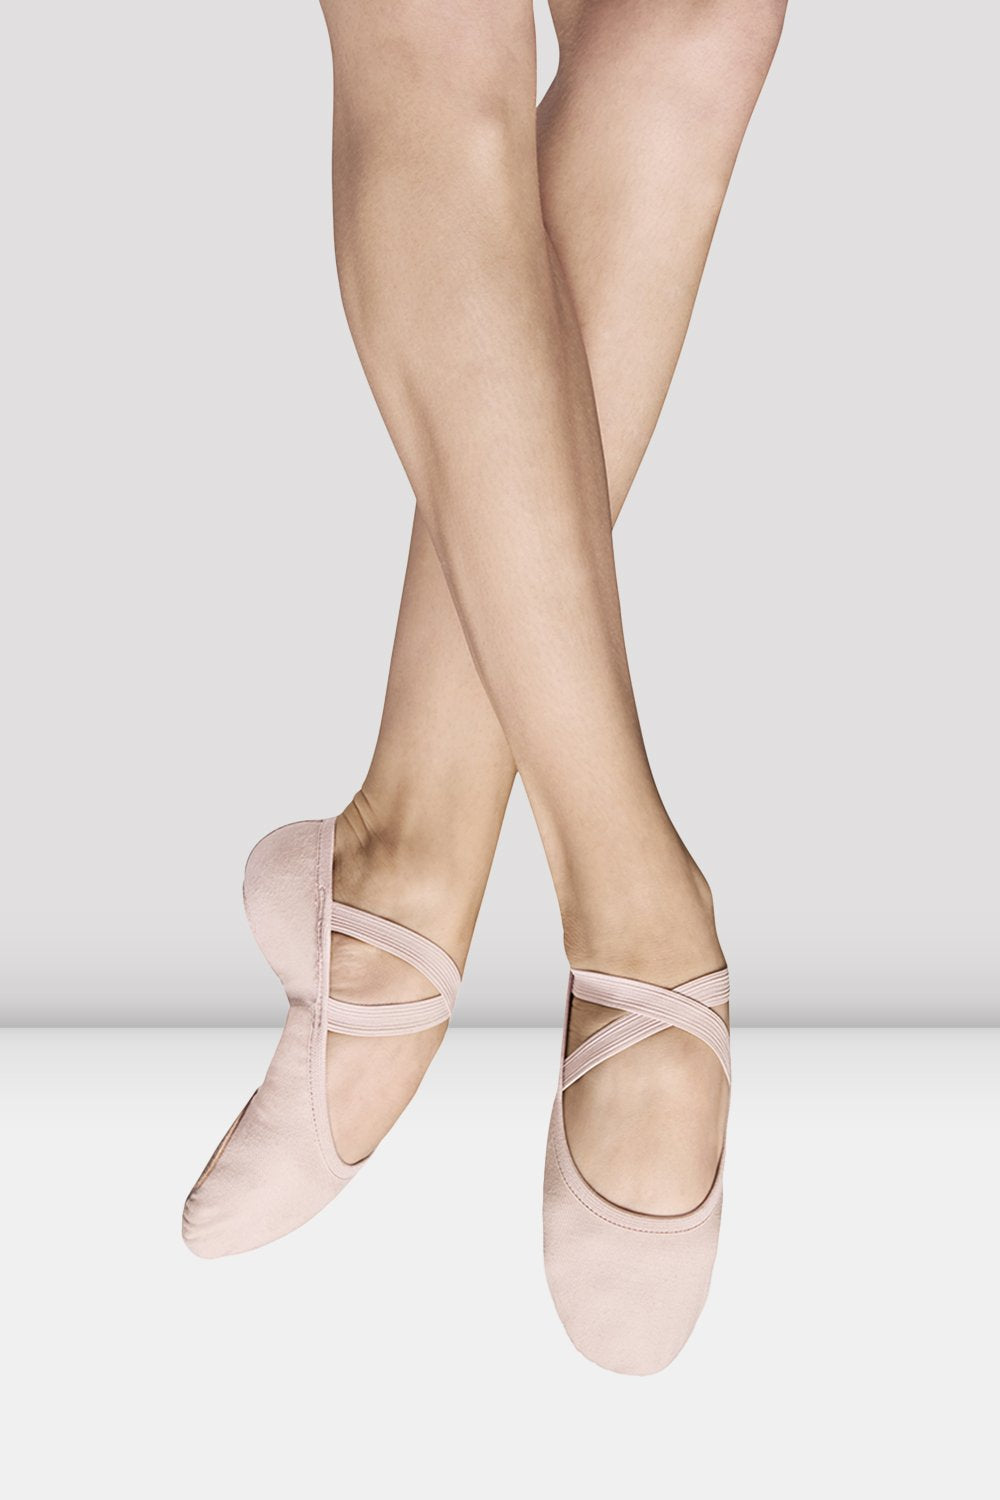 Theatrical pink canvas Bloch Ladies Performa Stretch Canvas Ballet Shoes pair of shoes on female foot jumping